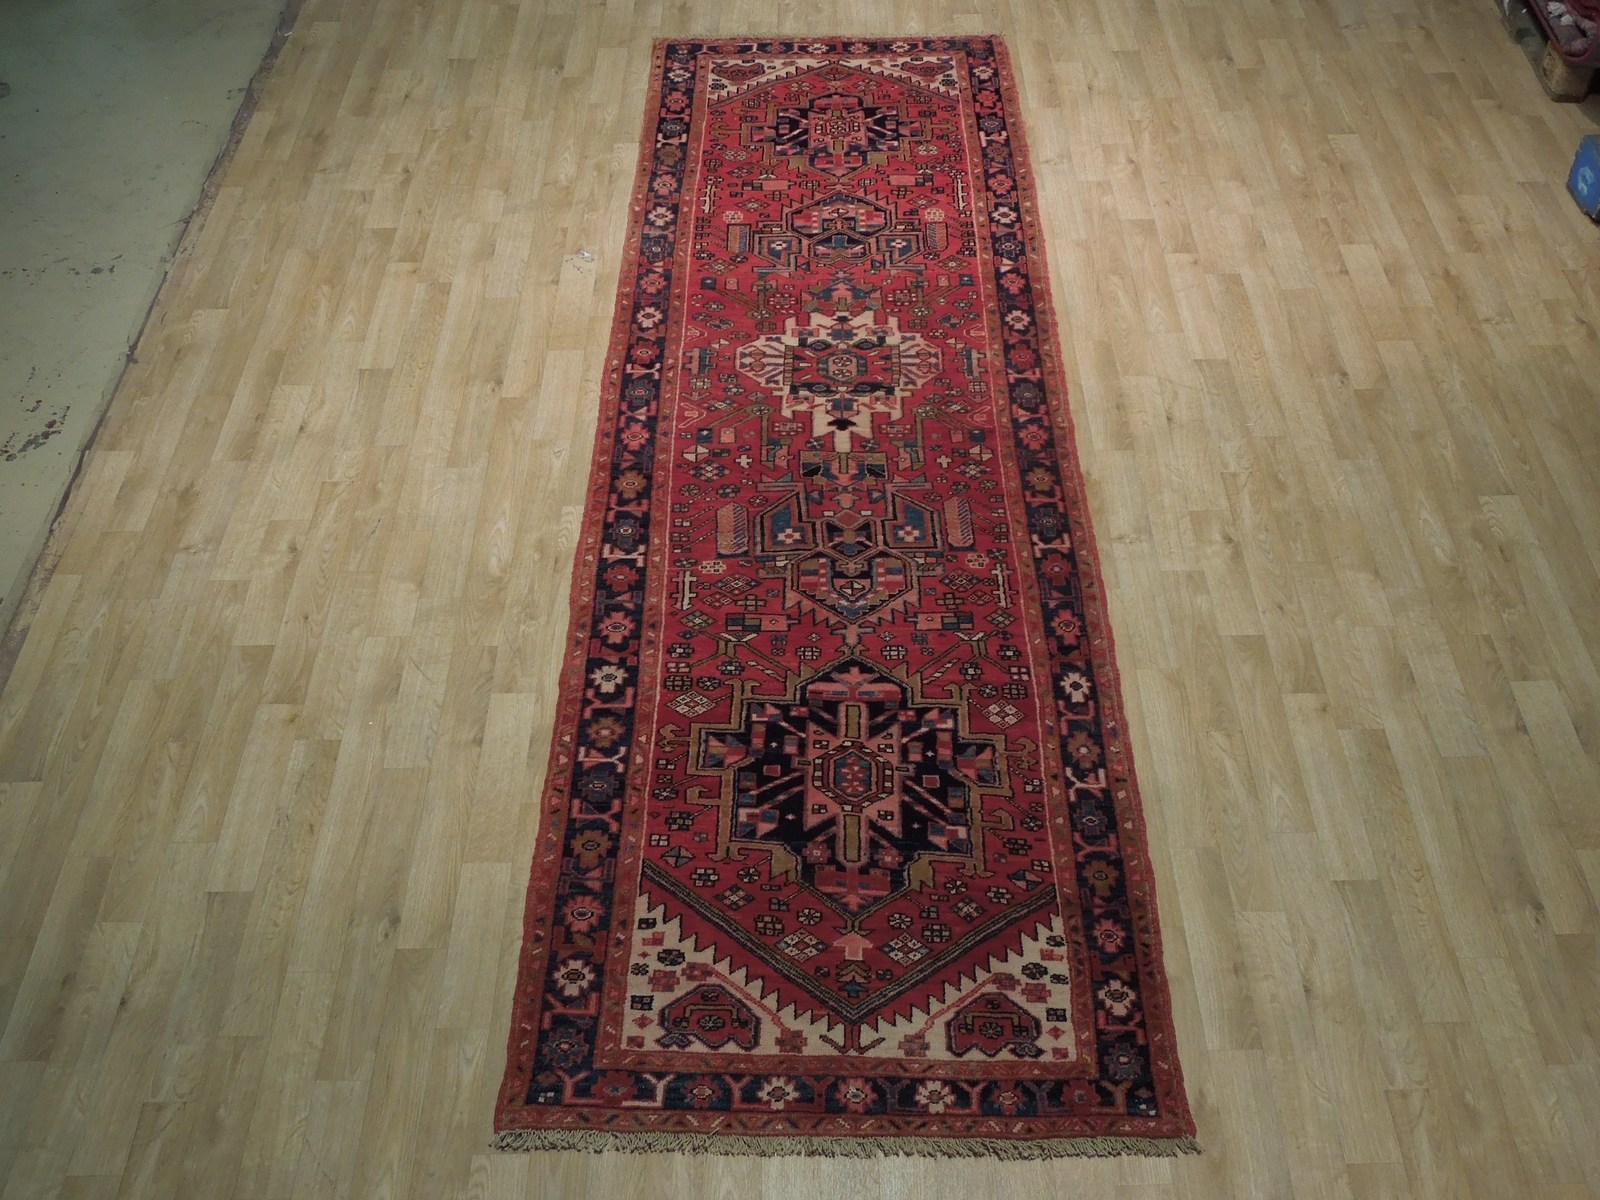 Tribal Inspired Olde Runner Persian Hand-Knotted 2' x 11' Red Heriz Wool Rug image 4